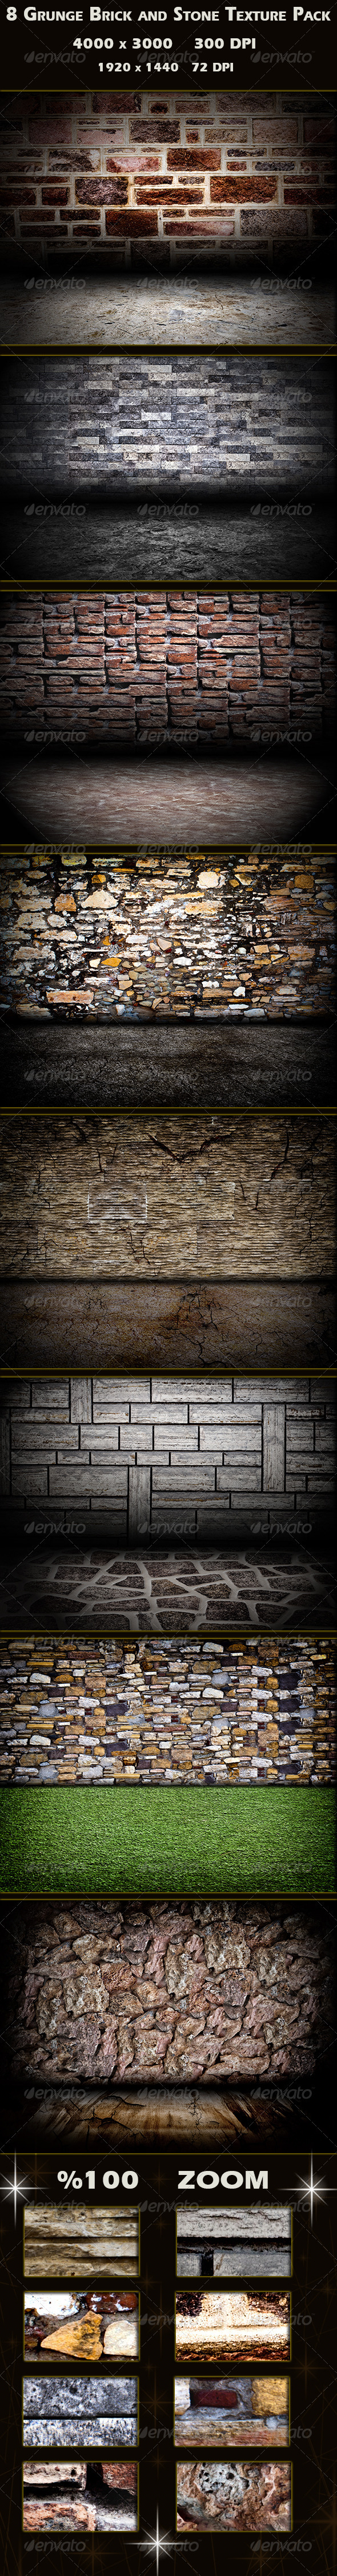 8 Grunge Brick and Stone Wall Texture Pack - Industrial / Grunge Textures